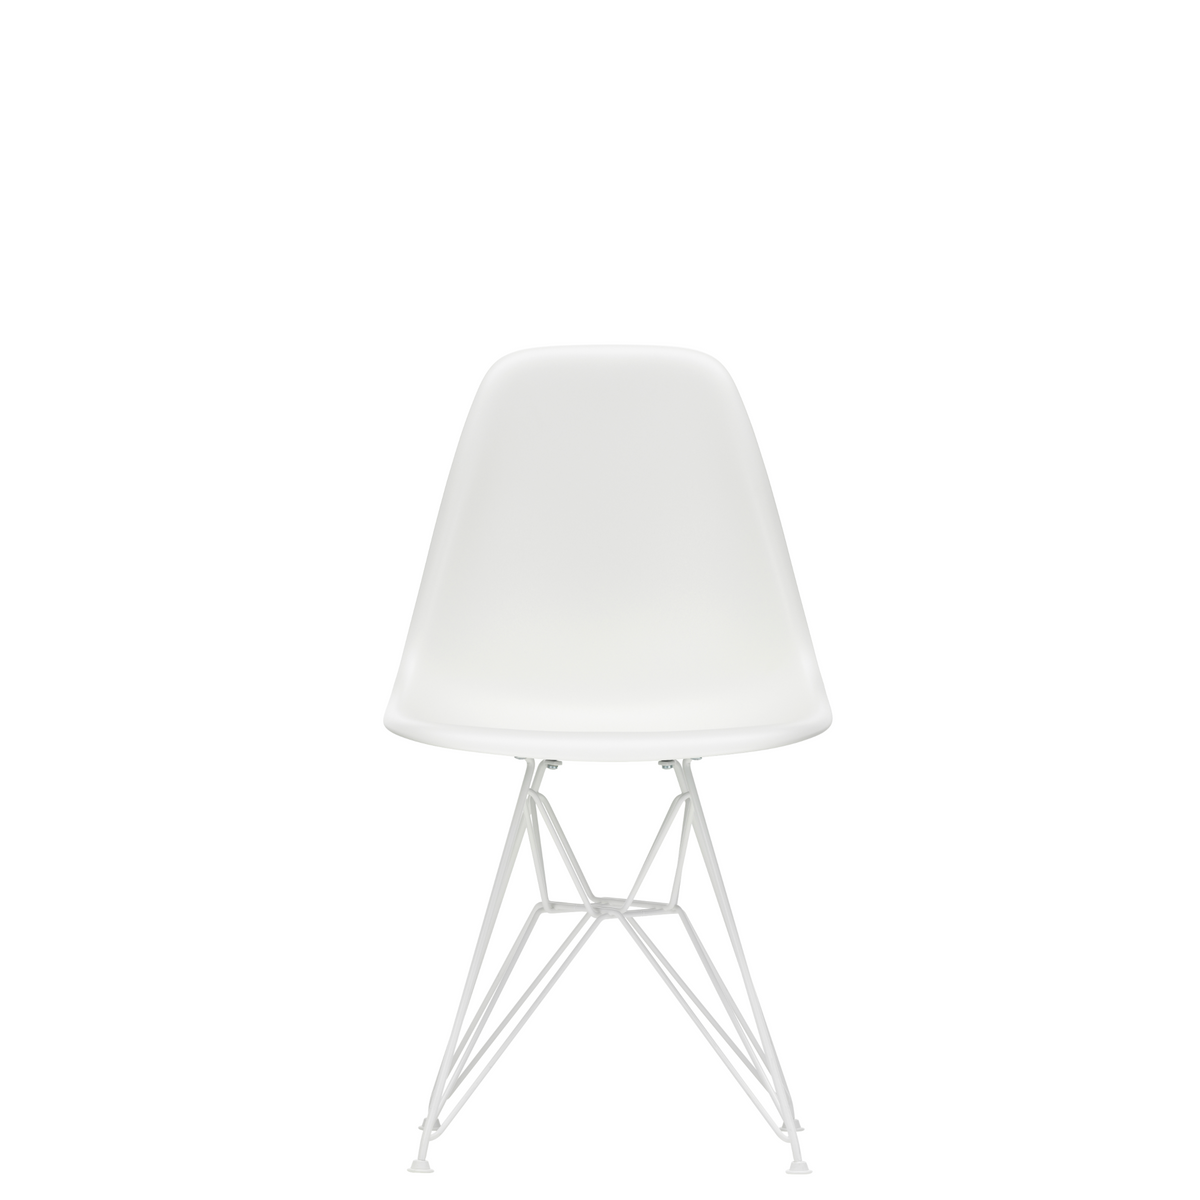 Vitra Eames Plastic Side Chair DSR Powder Coated for Outdoor Use. White Shell, White Powdercoated Base